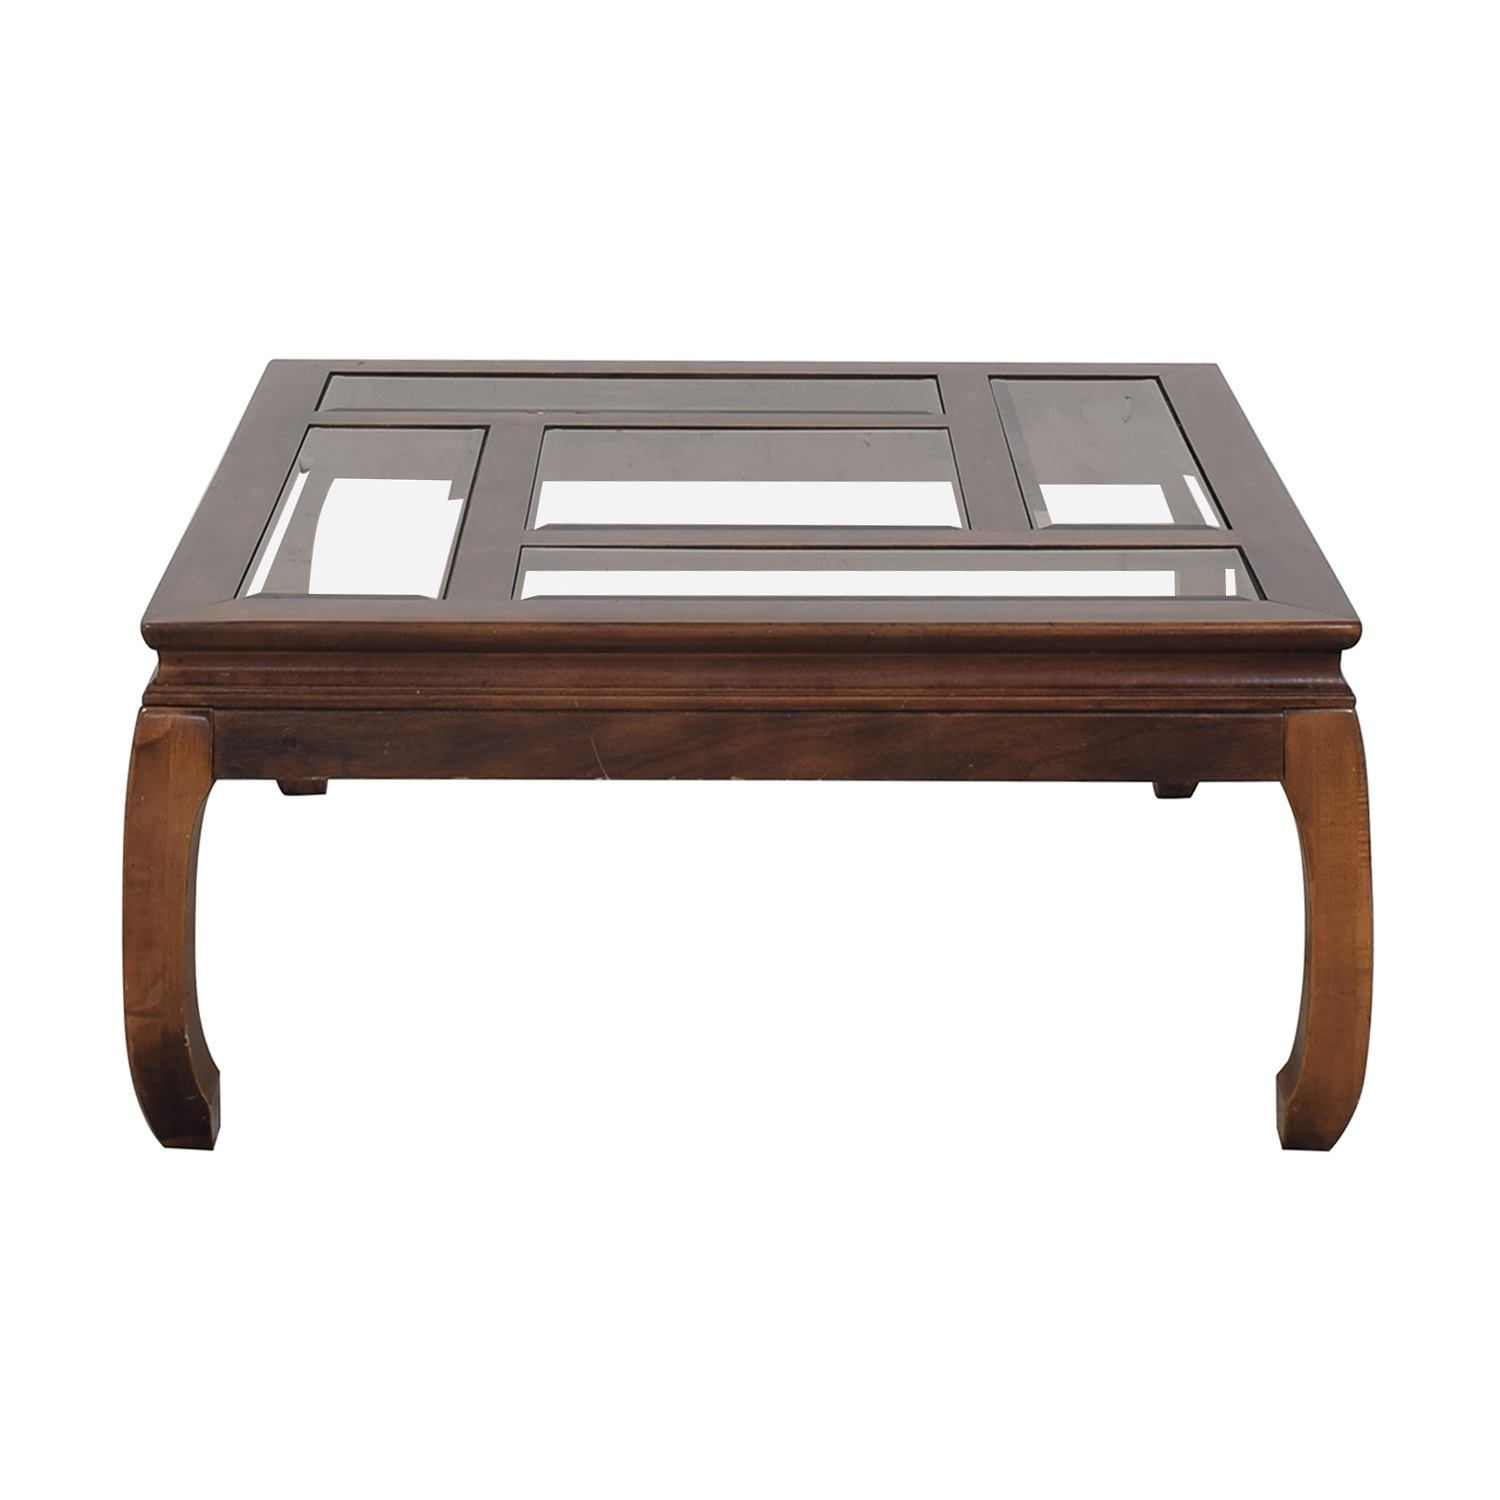 Panel Top Coffee Table sale